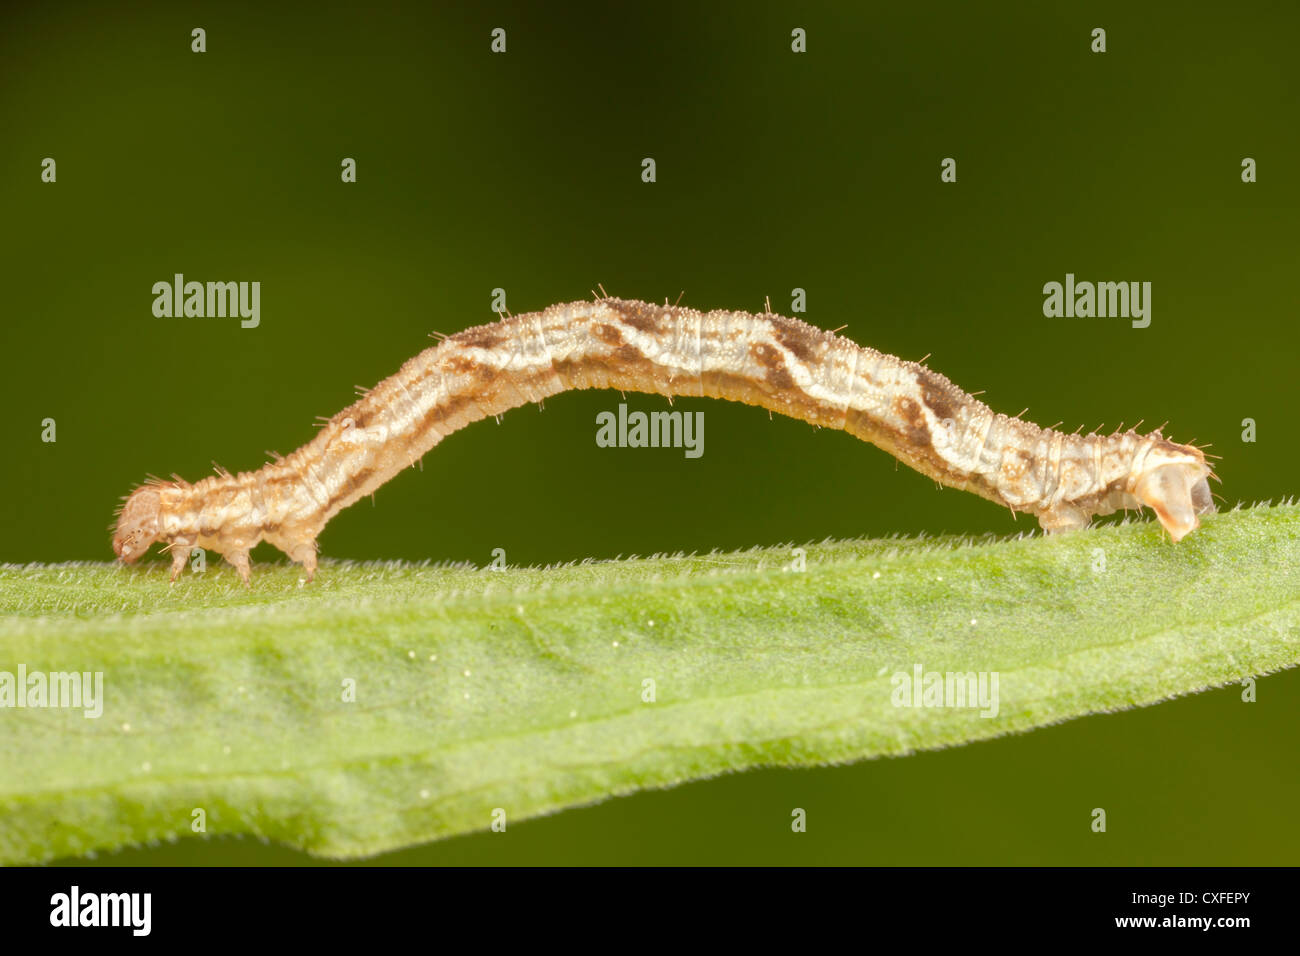 Common Tan Wave Moth (Pleuroprucha insulsaria) caterpillar (larva) - Stock Image